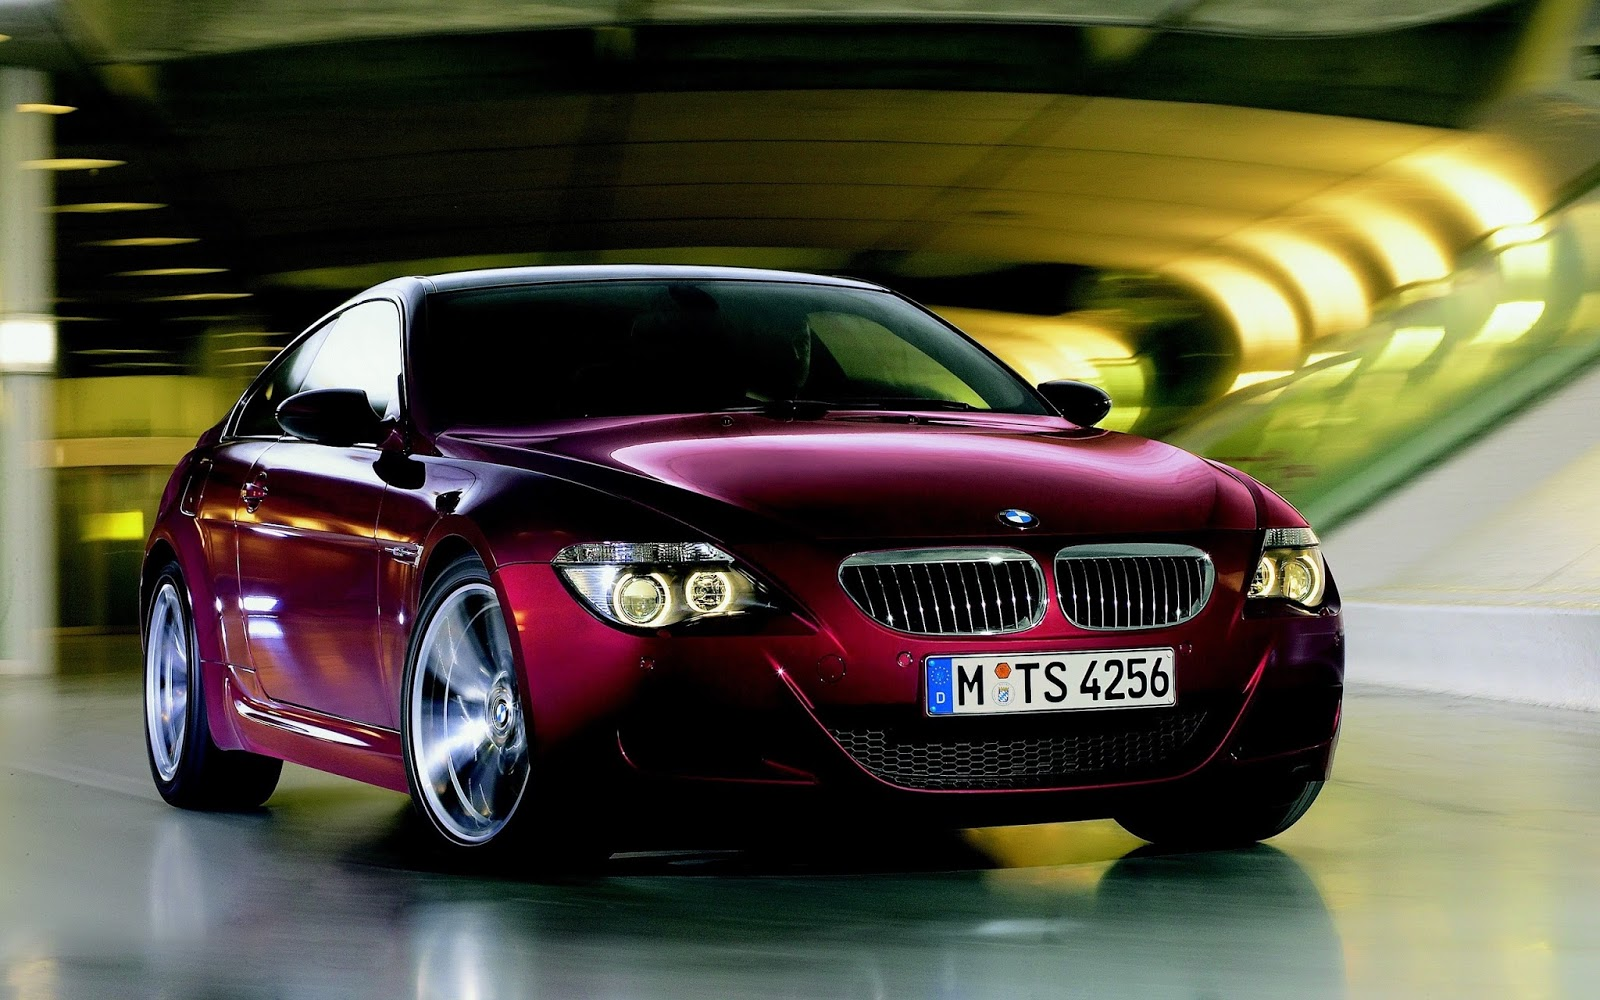 Super fast Sports Cars Wallpapers Top Super Fast Cars HD Wallpapers 1600x1000